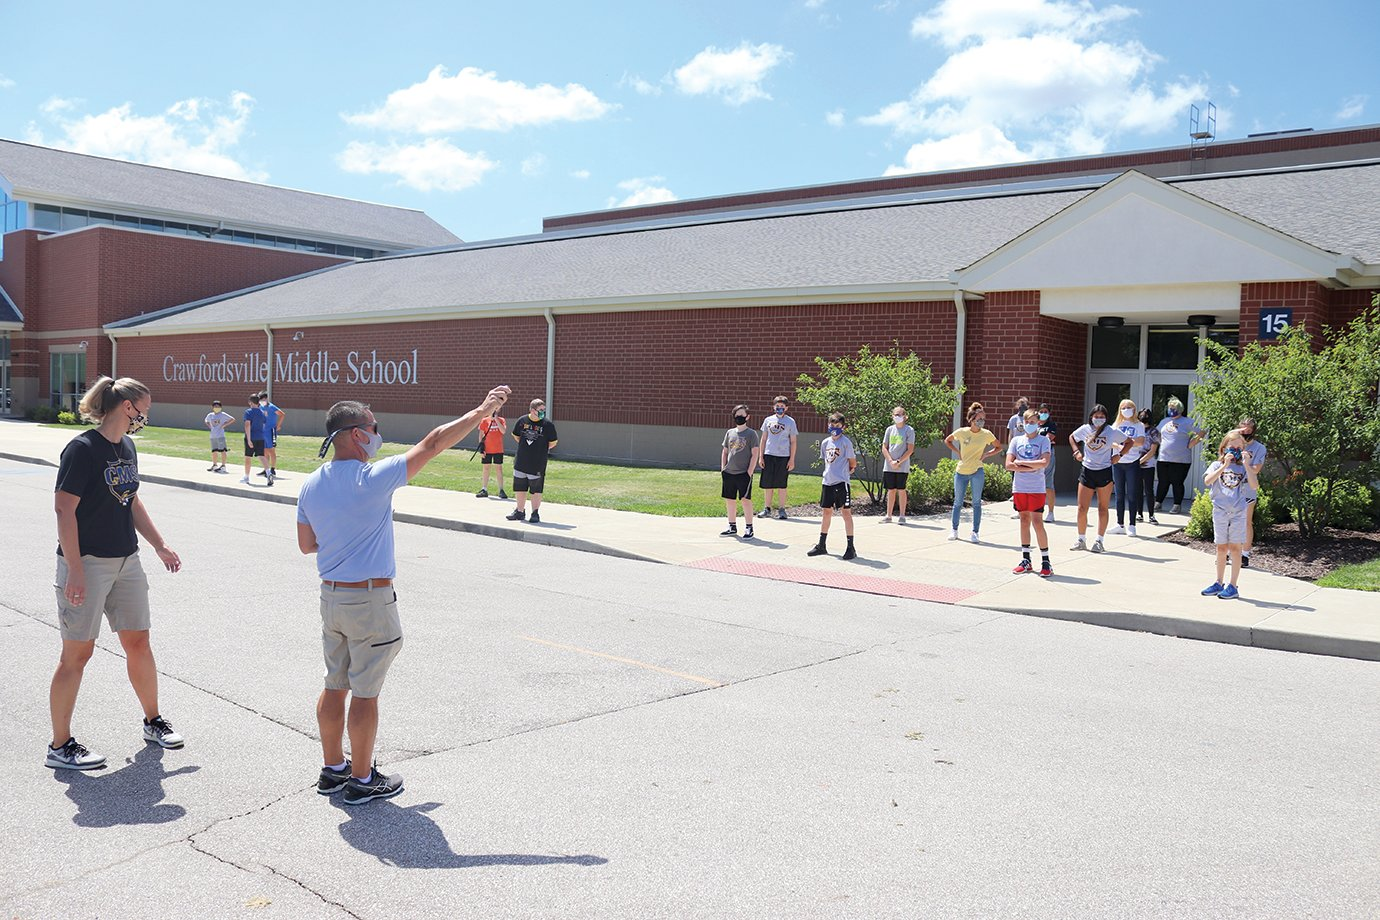 Physical education teachers Amanda Elizonzo and Andy Craig, left, instruct a seventh-grade class to warm up for a game of cardio softball by walking around the south parking lot at Crawfordsville Middle School. Student would run and walk for 20 seconds at a time to get loose and enjoy an outdoor break.